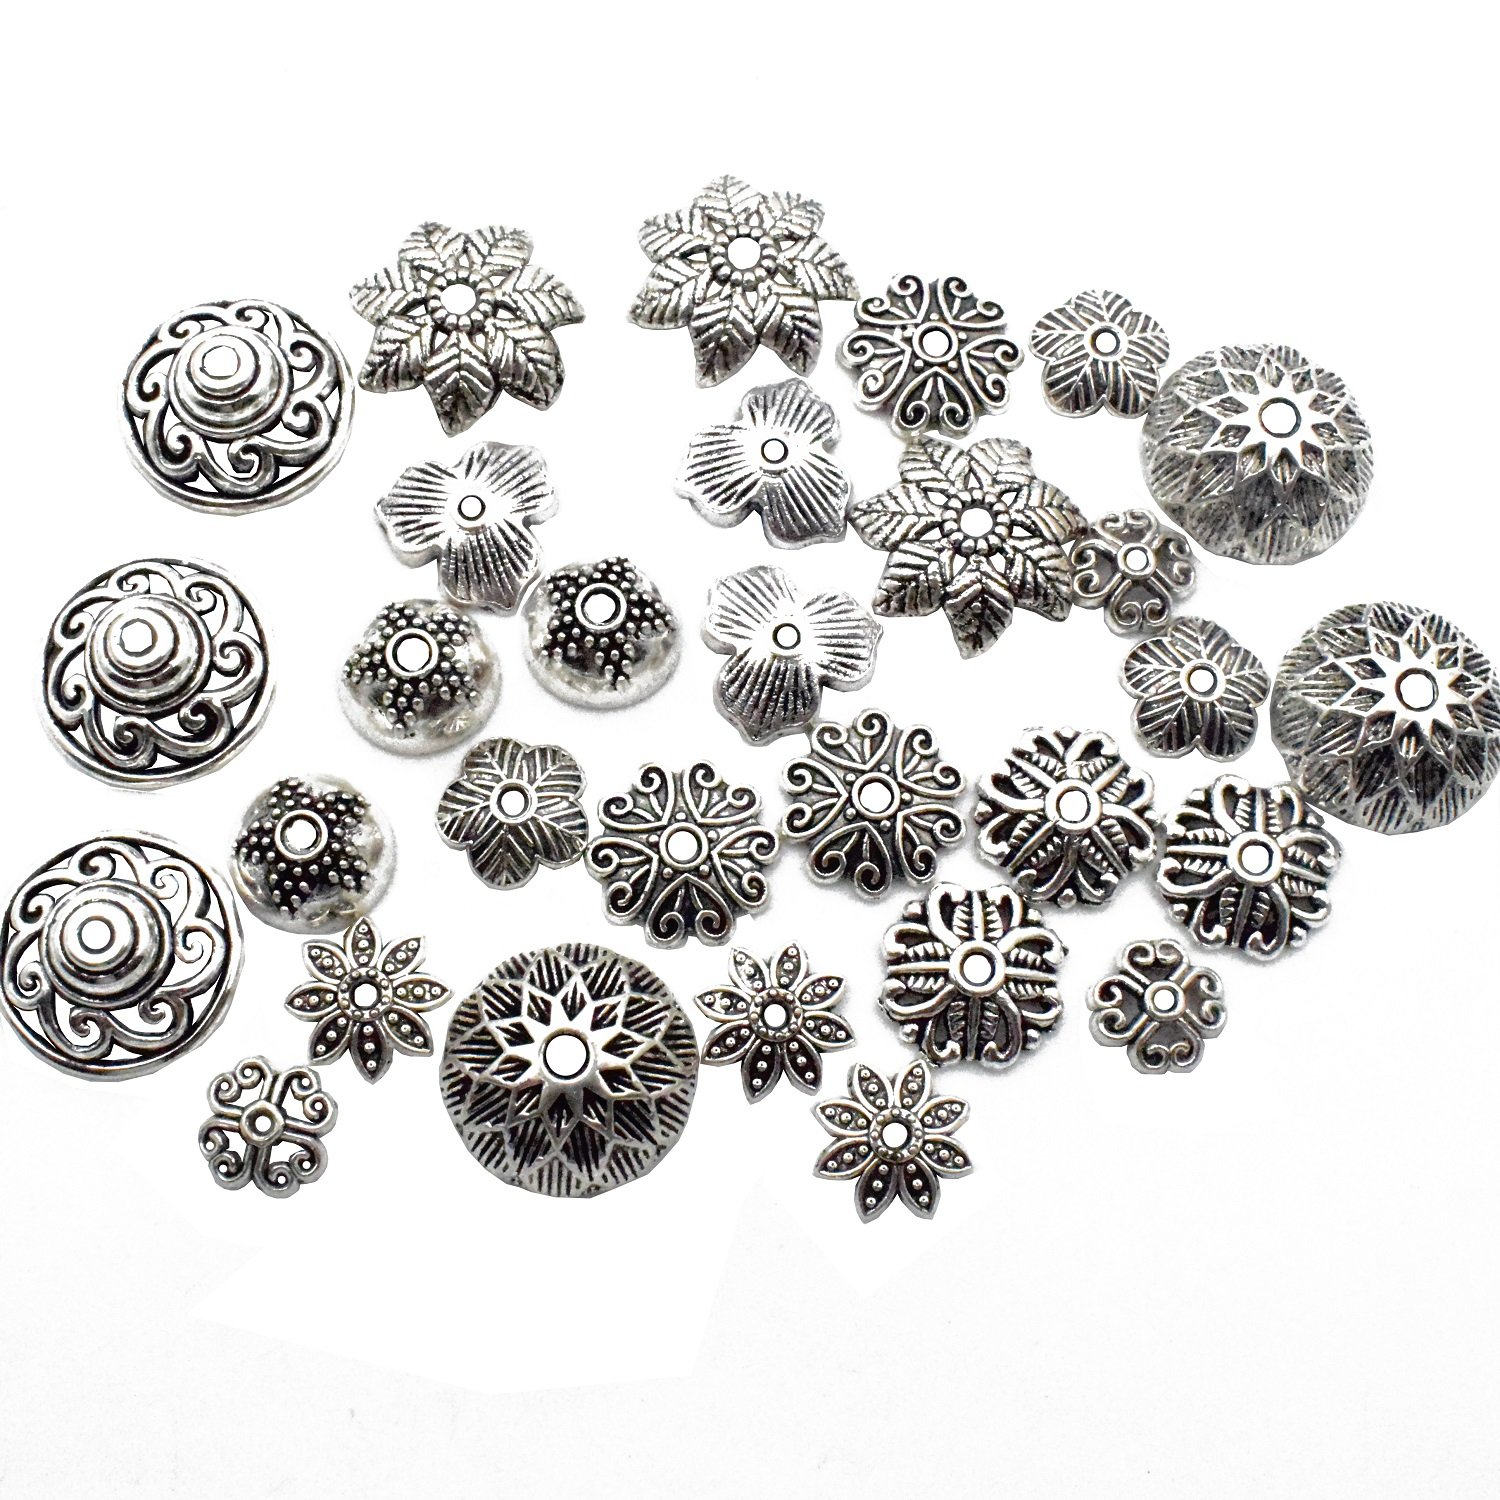 100g (about 75pcs) Mixed Antique Tibetan Silver Bail Tube Beads,Spacer Bead,Bail beads,Bead Hanger Fit Charm European Bracelet Pendant M27 (Bail Tube Beads) yukucharms